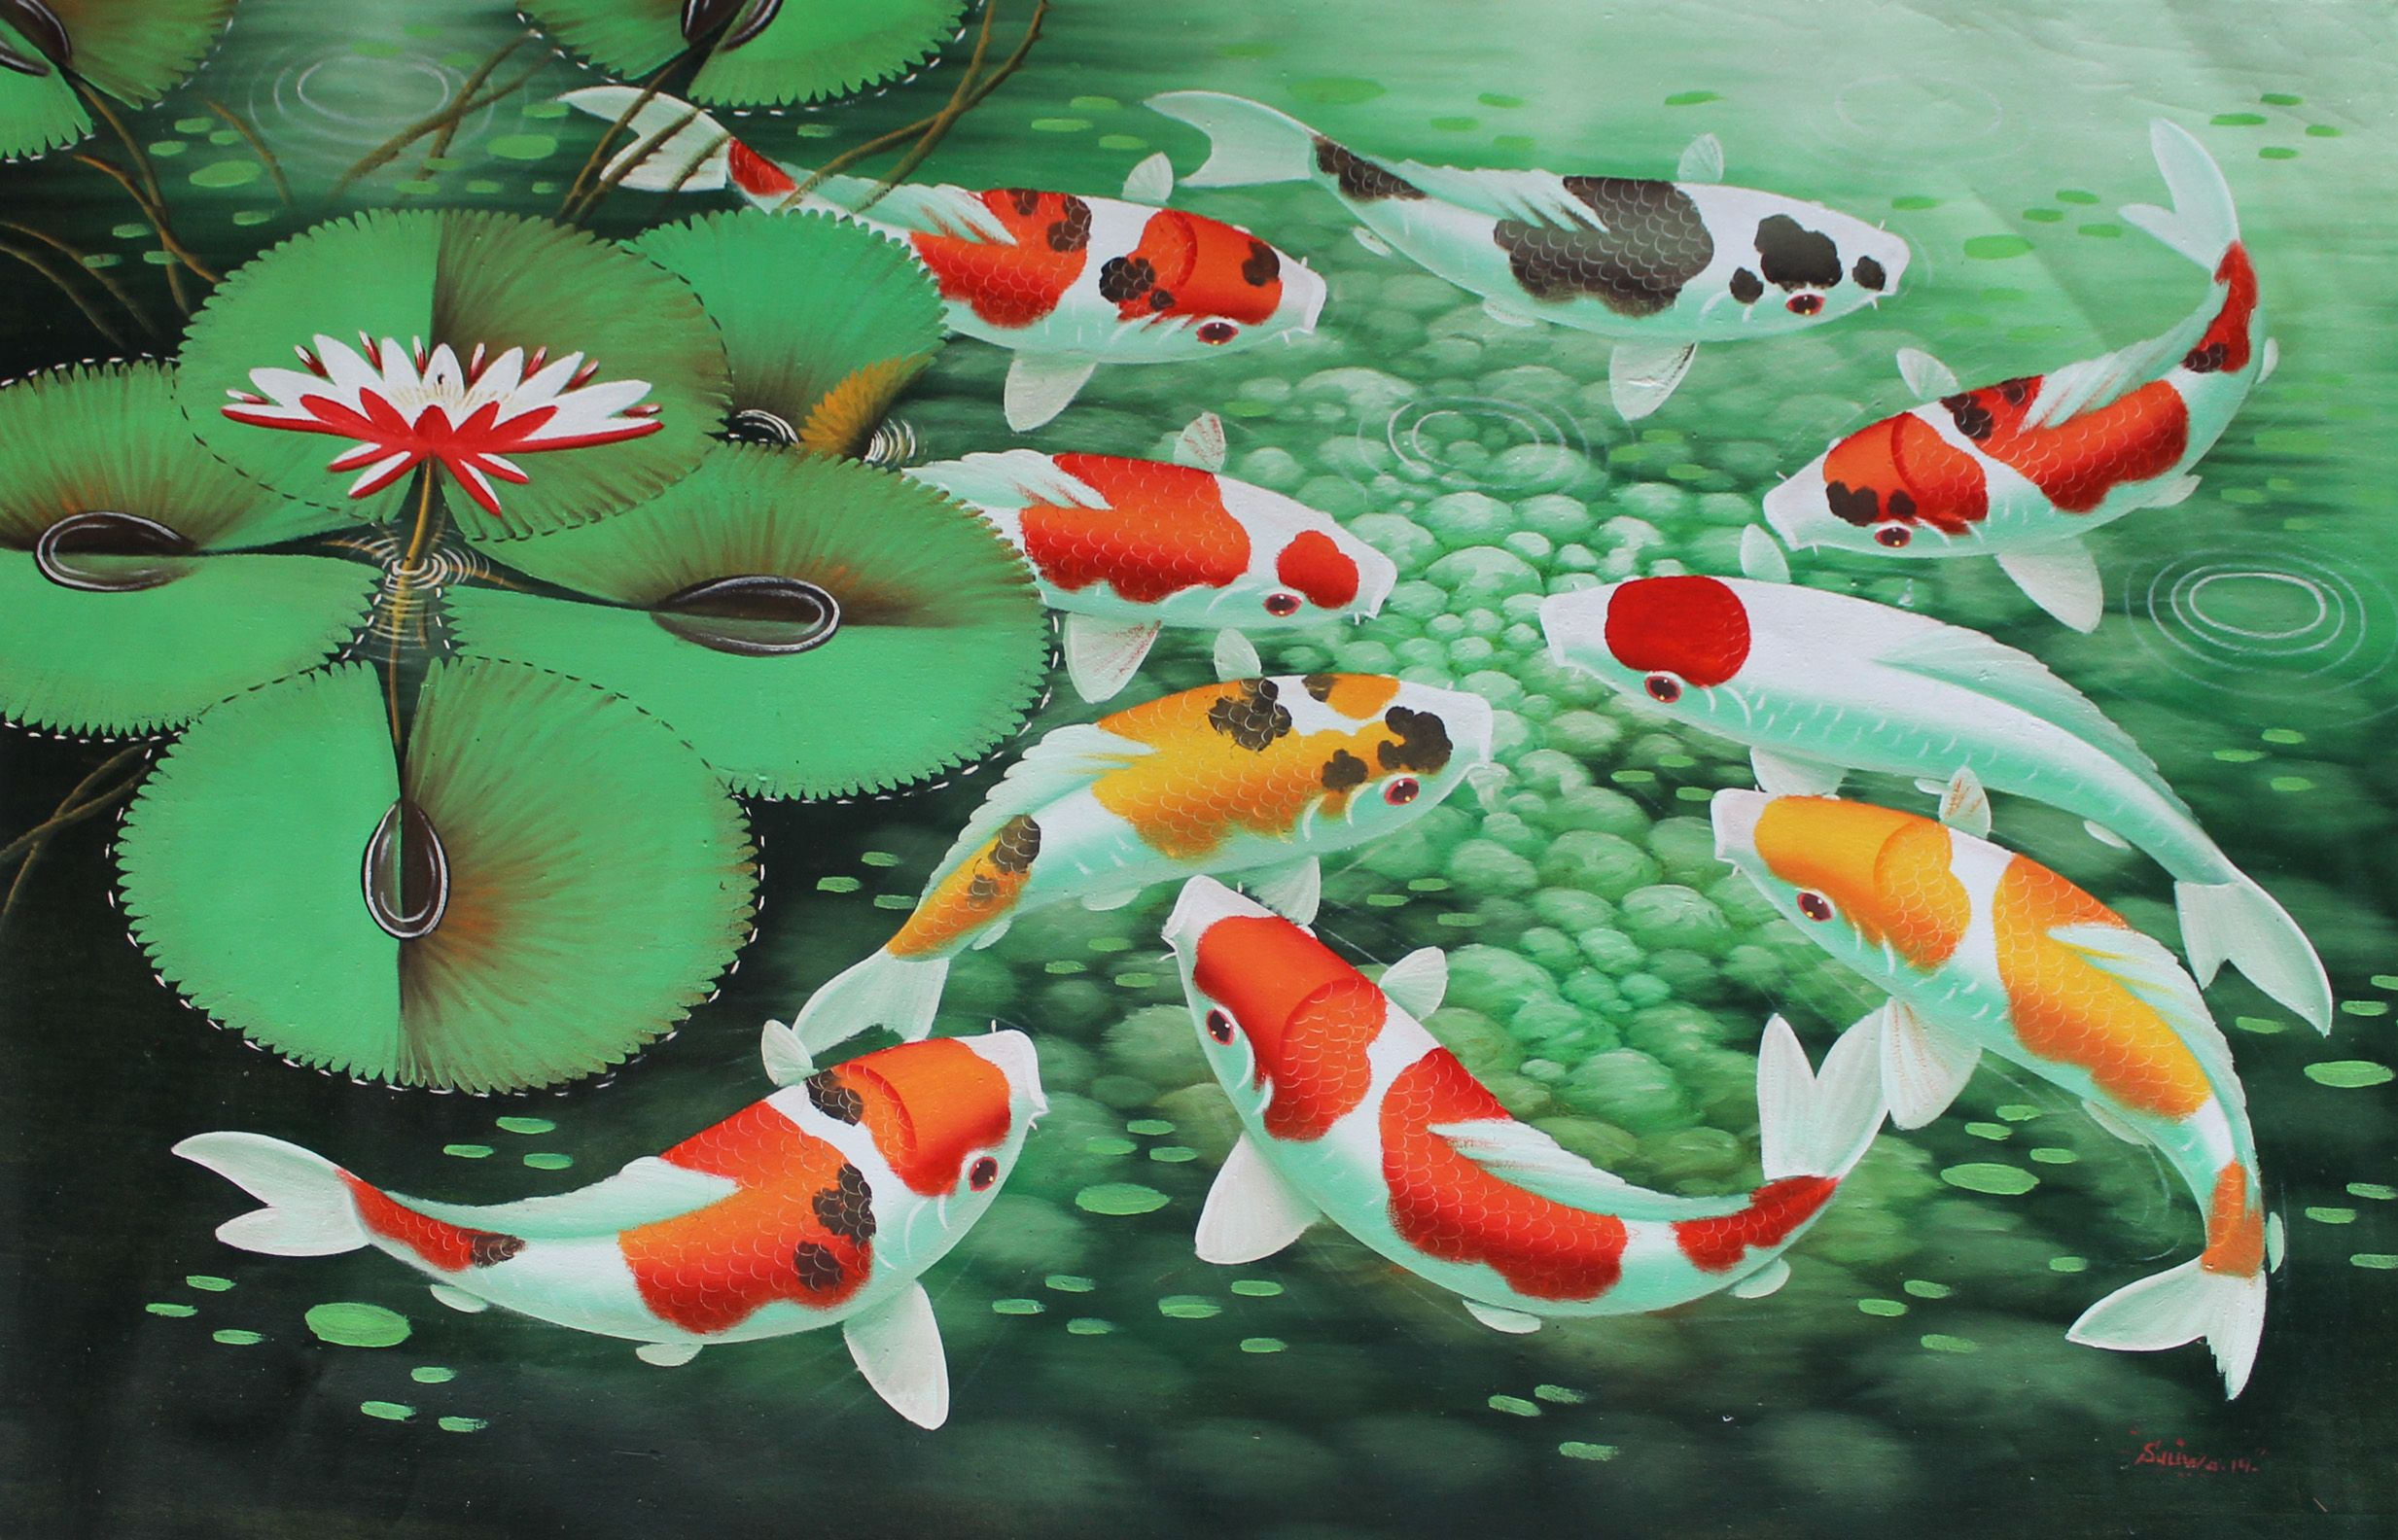 Koi fish painting wallpaper love of koi pinterest for Japanese fish painting